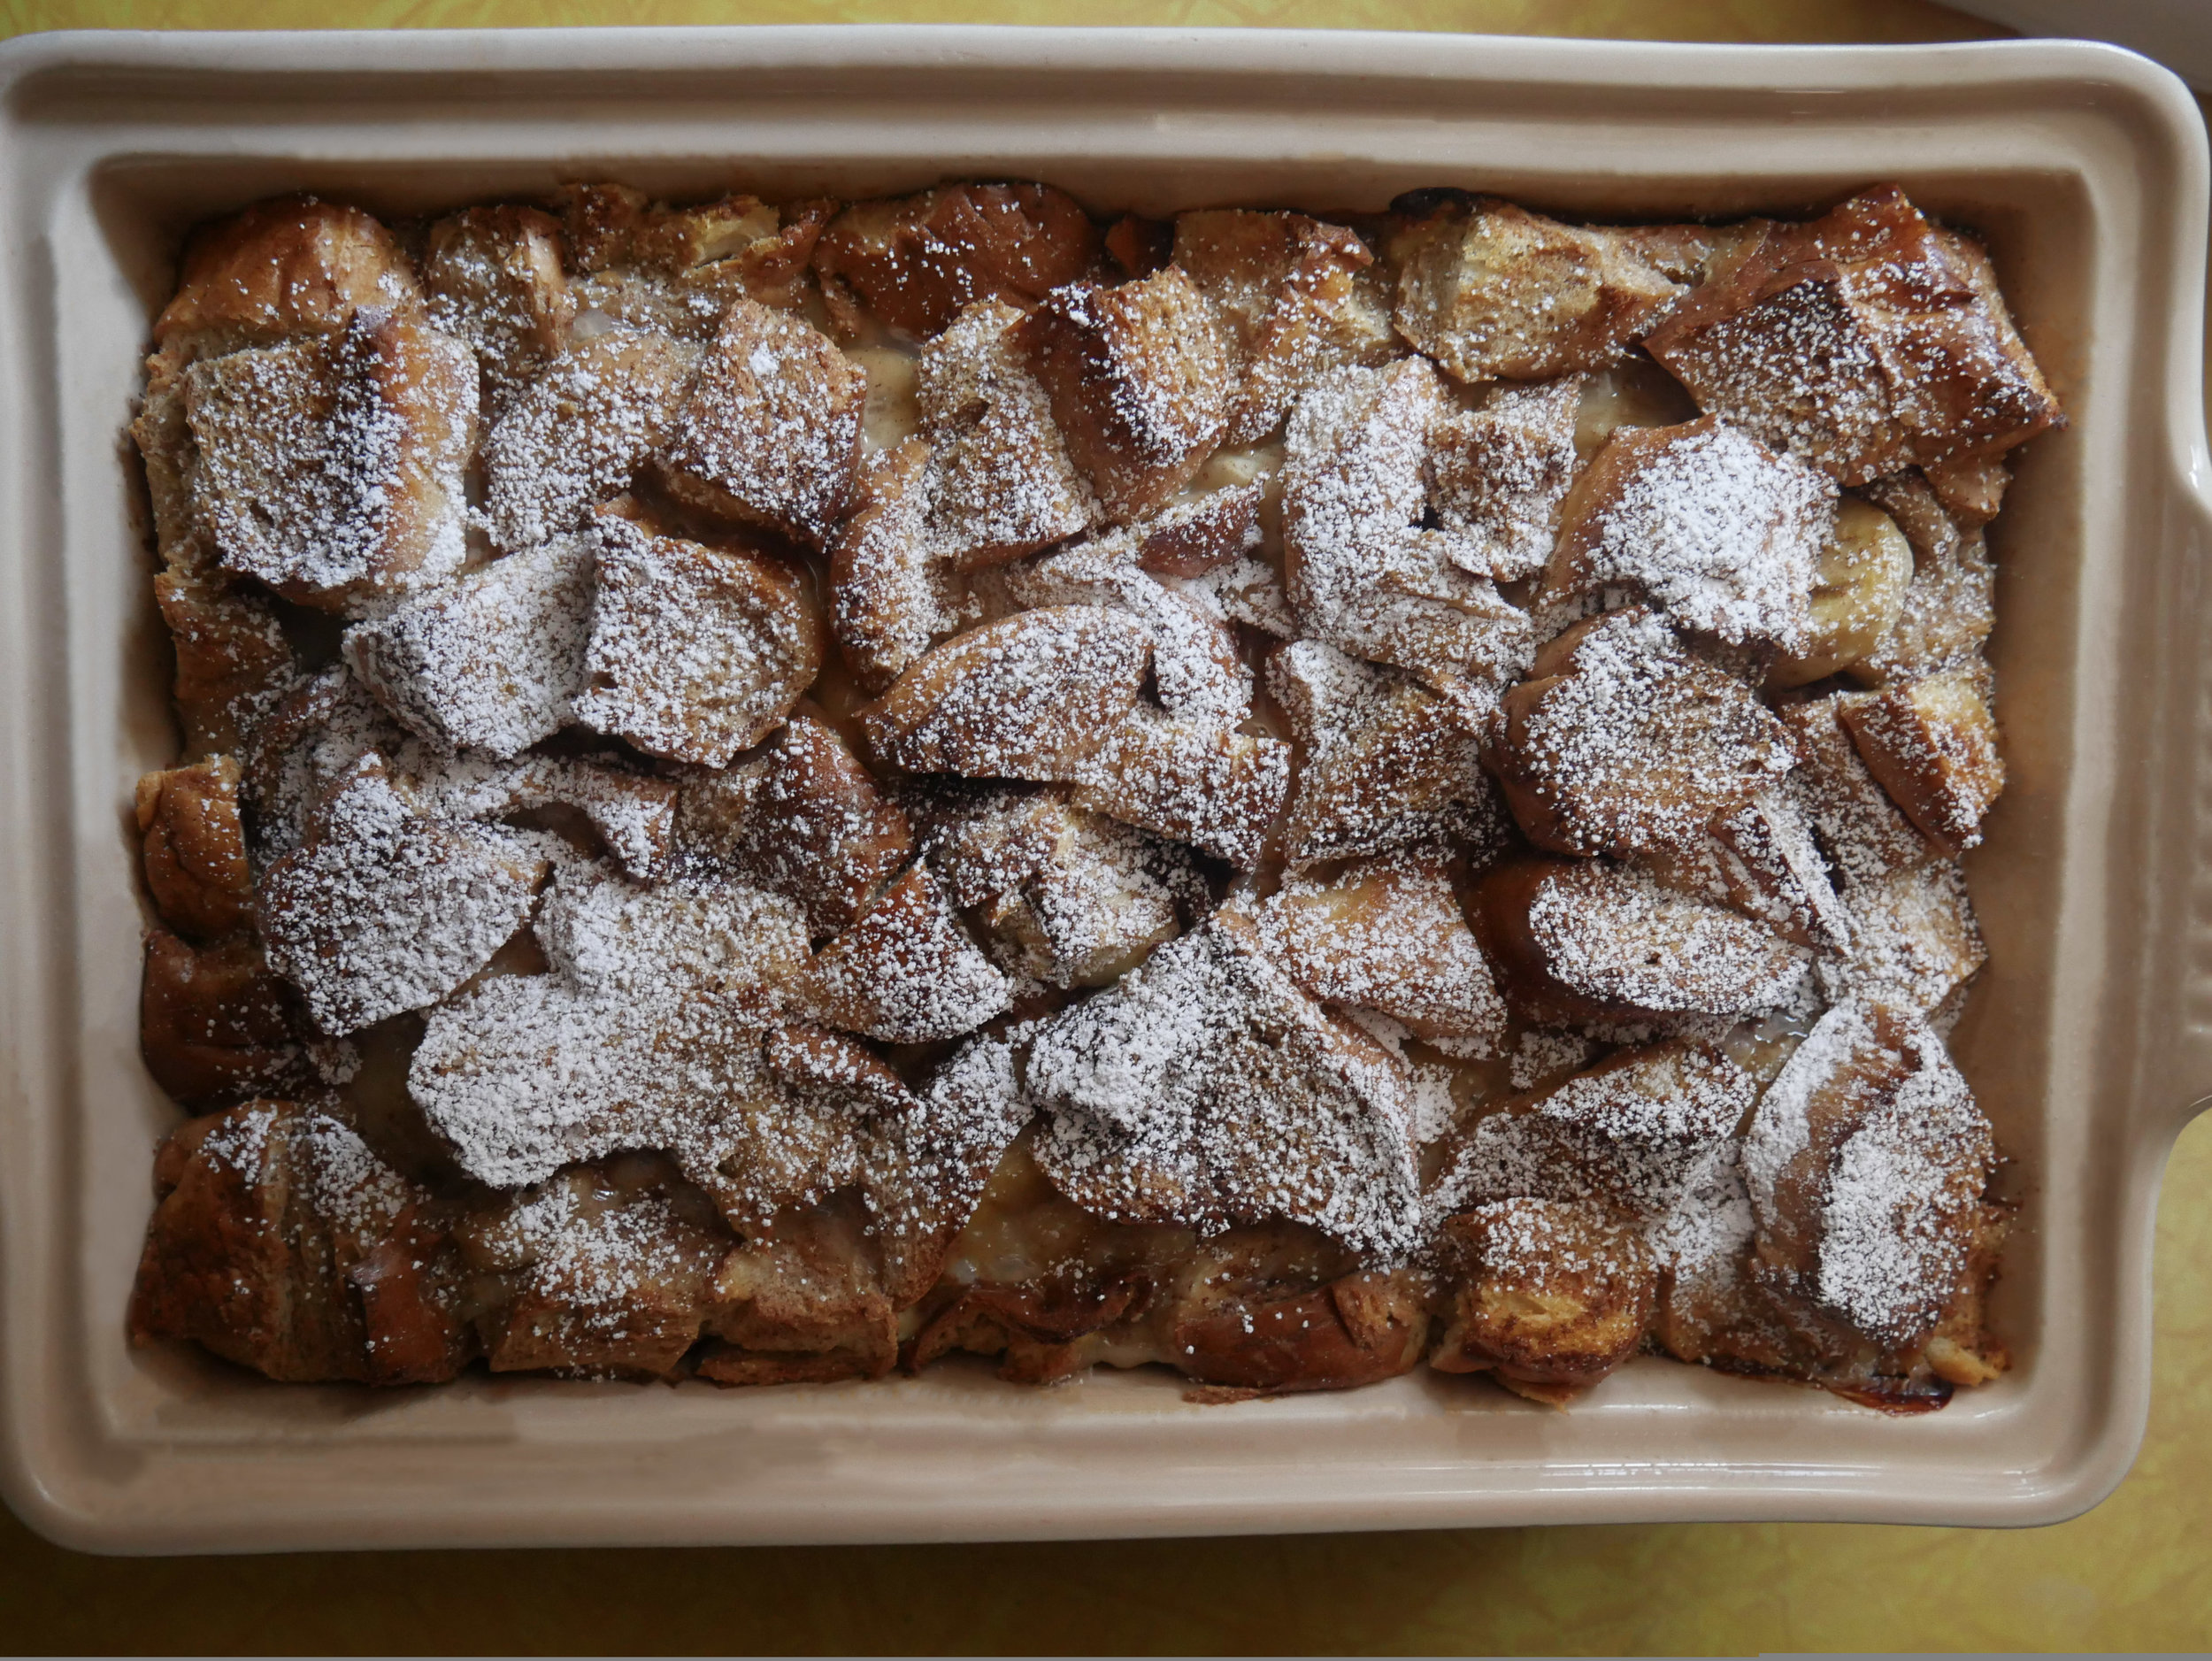 French Toast with Raspberry Compote filling